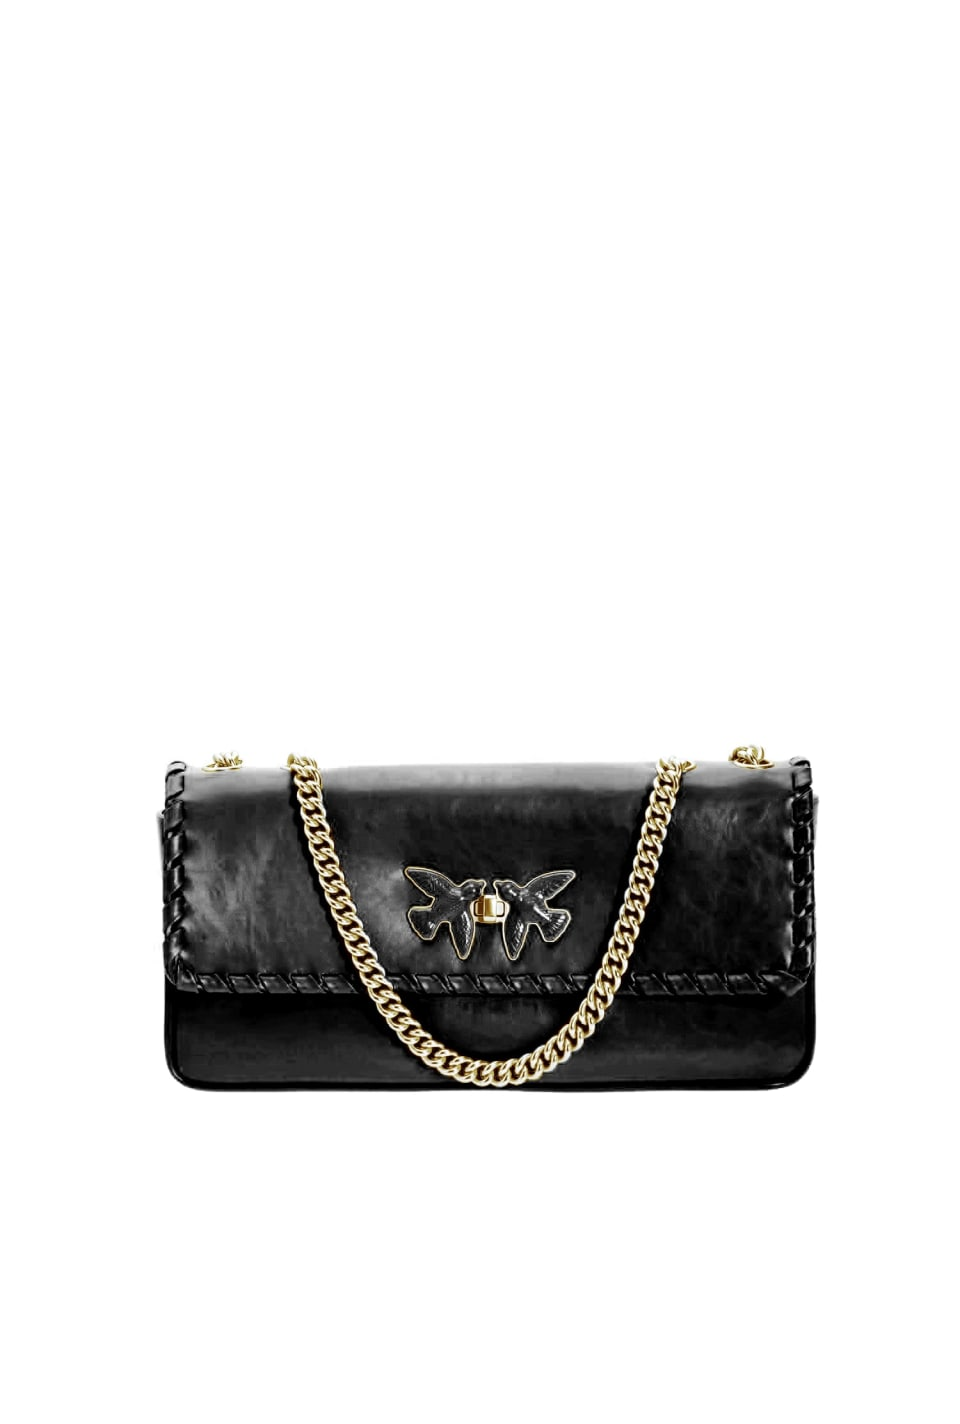 Pochette Maxi Bag Twist in leather